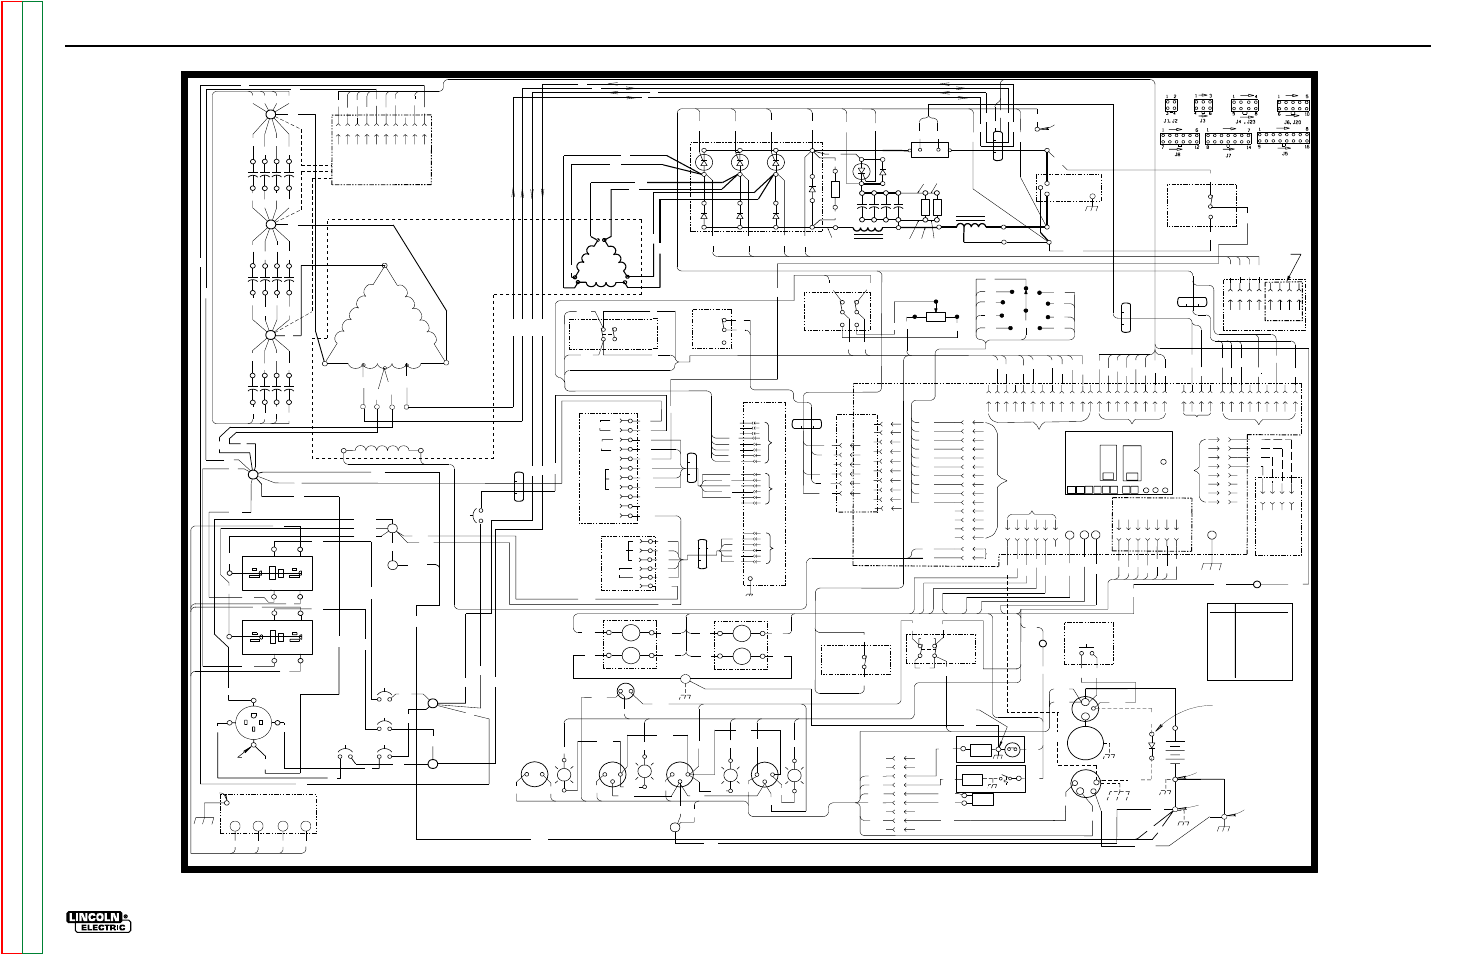 1959 lincoln wiring diagram